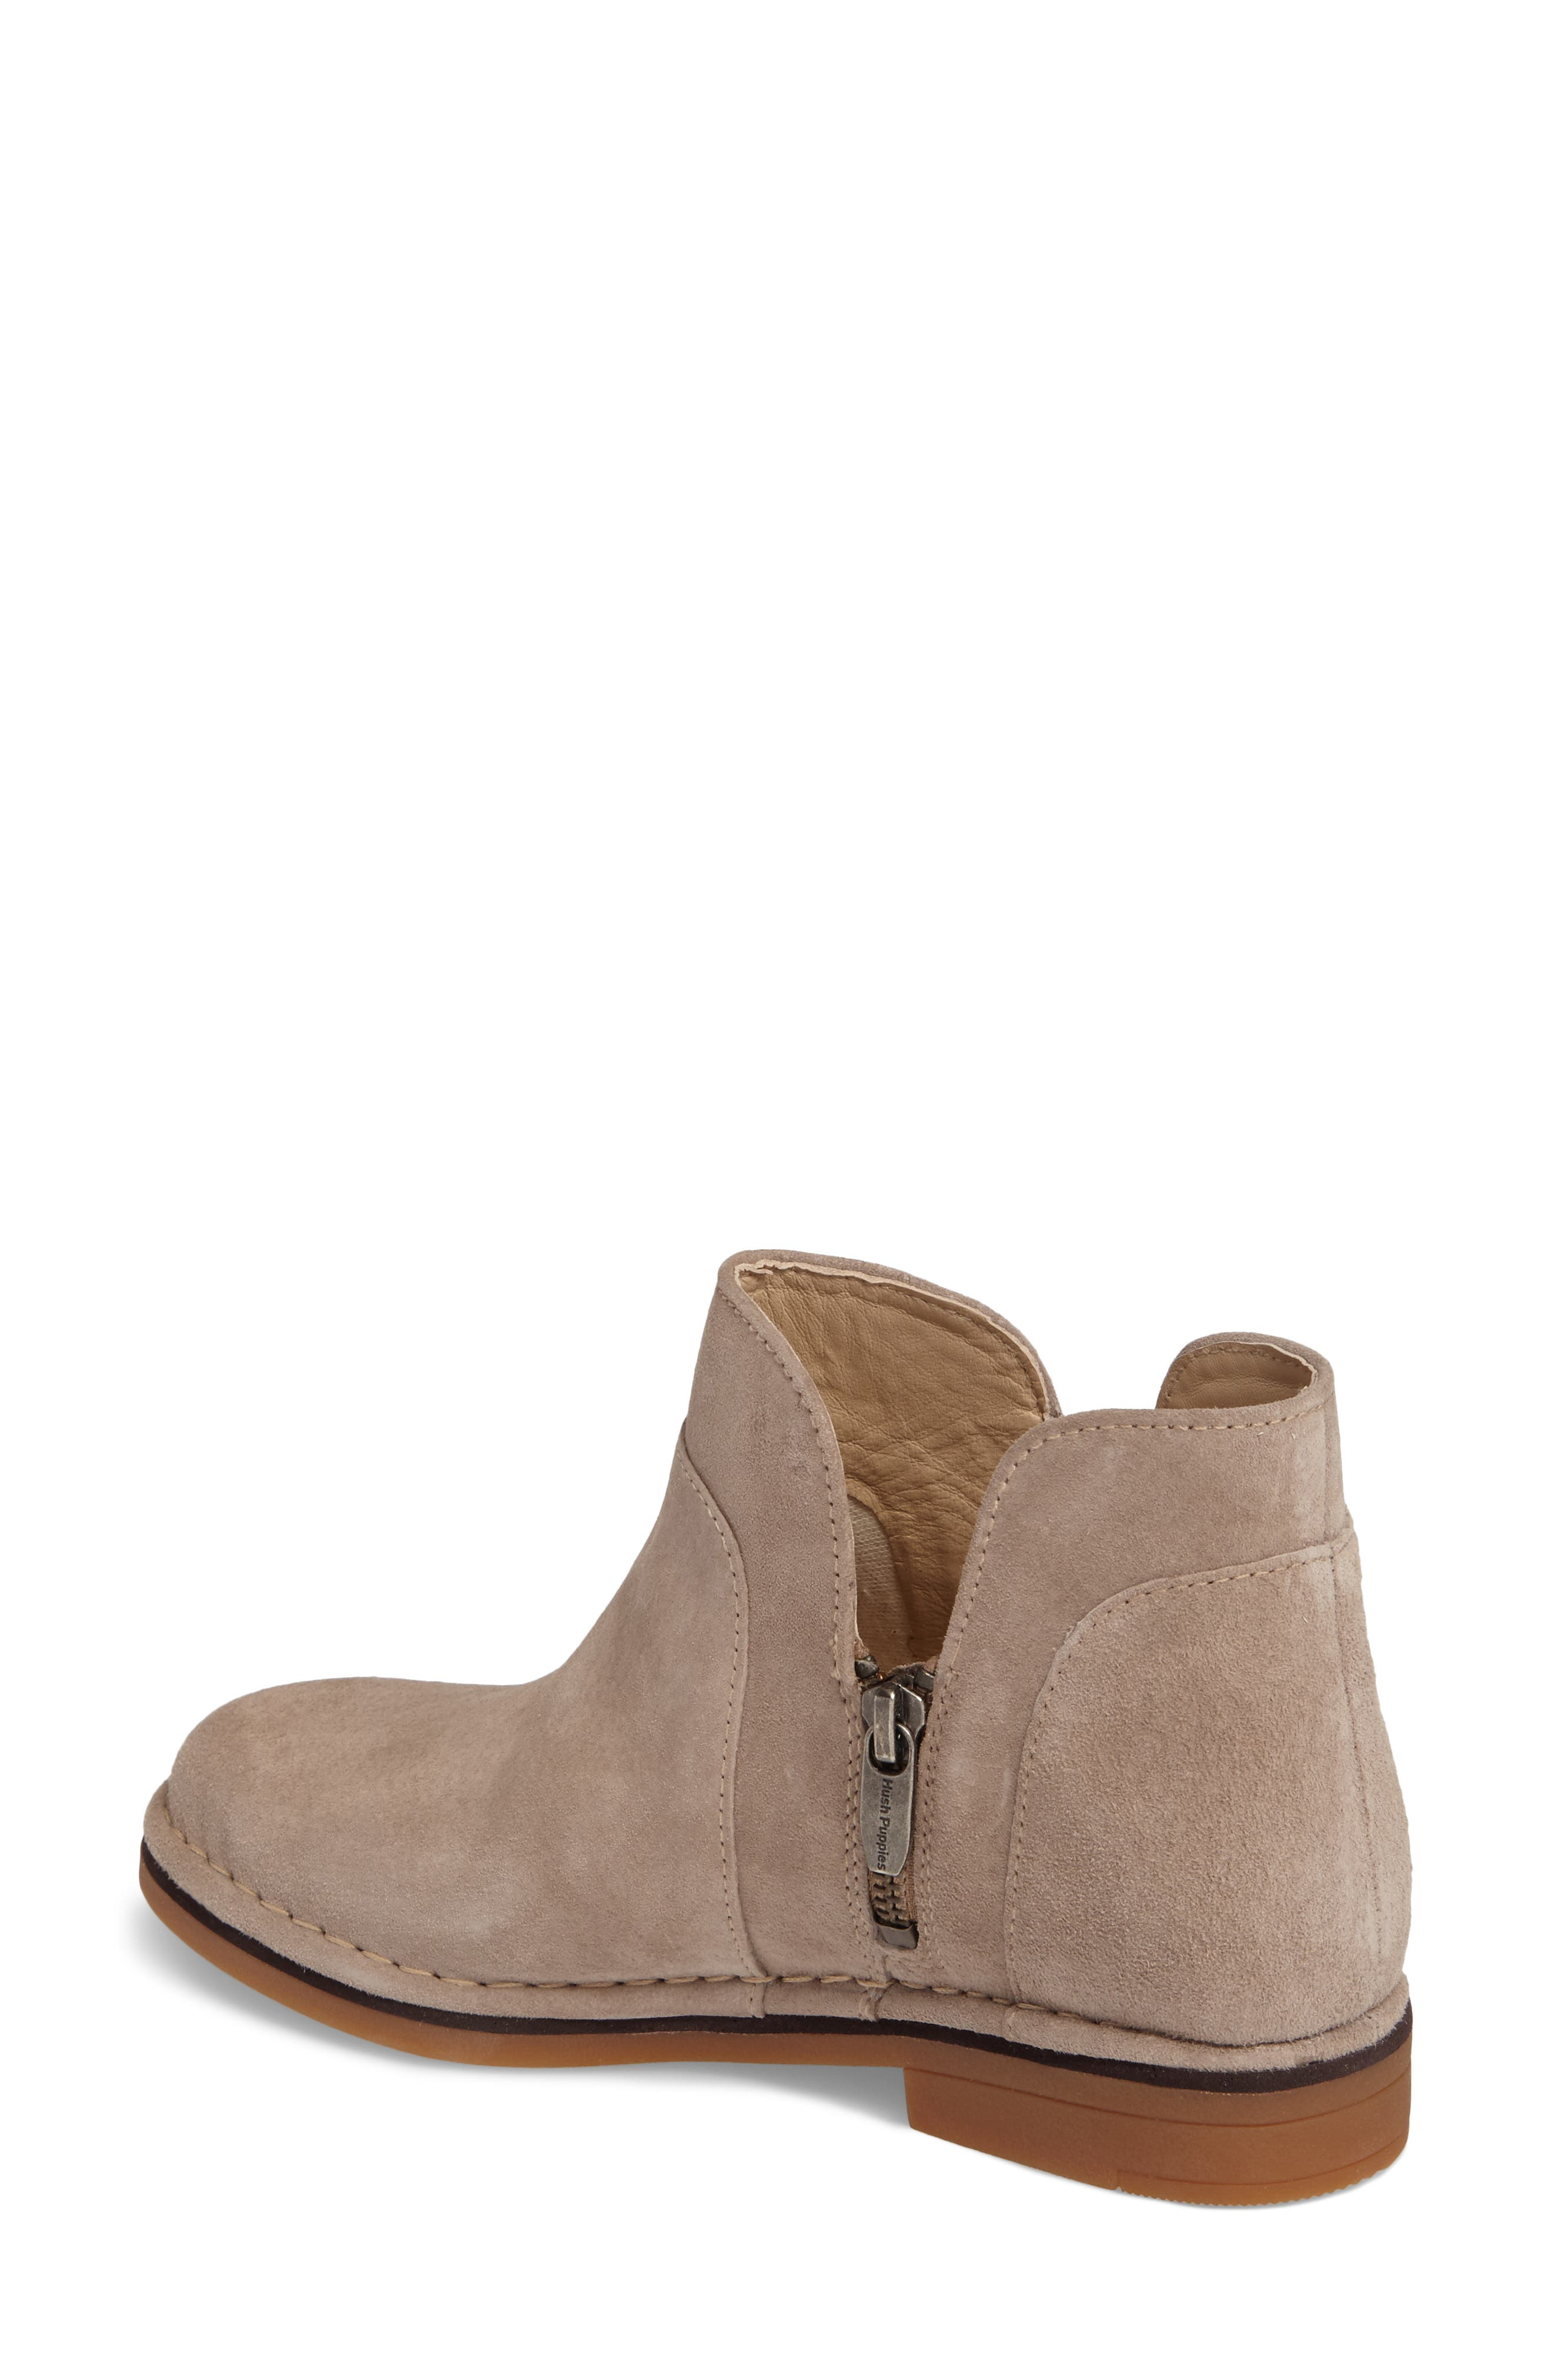 Claudia Catelyn Bootie,                             Alternate thumbnail 5, color,